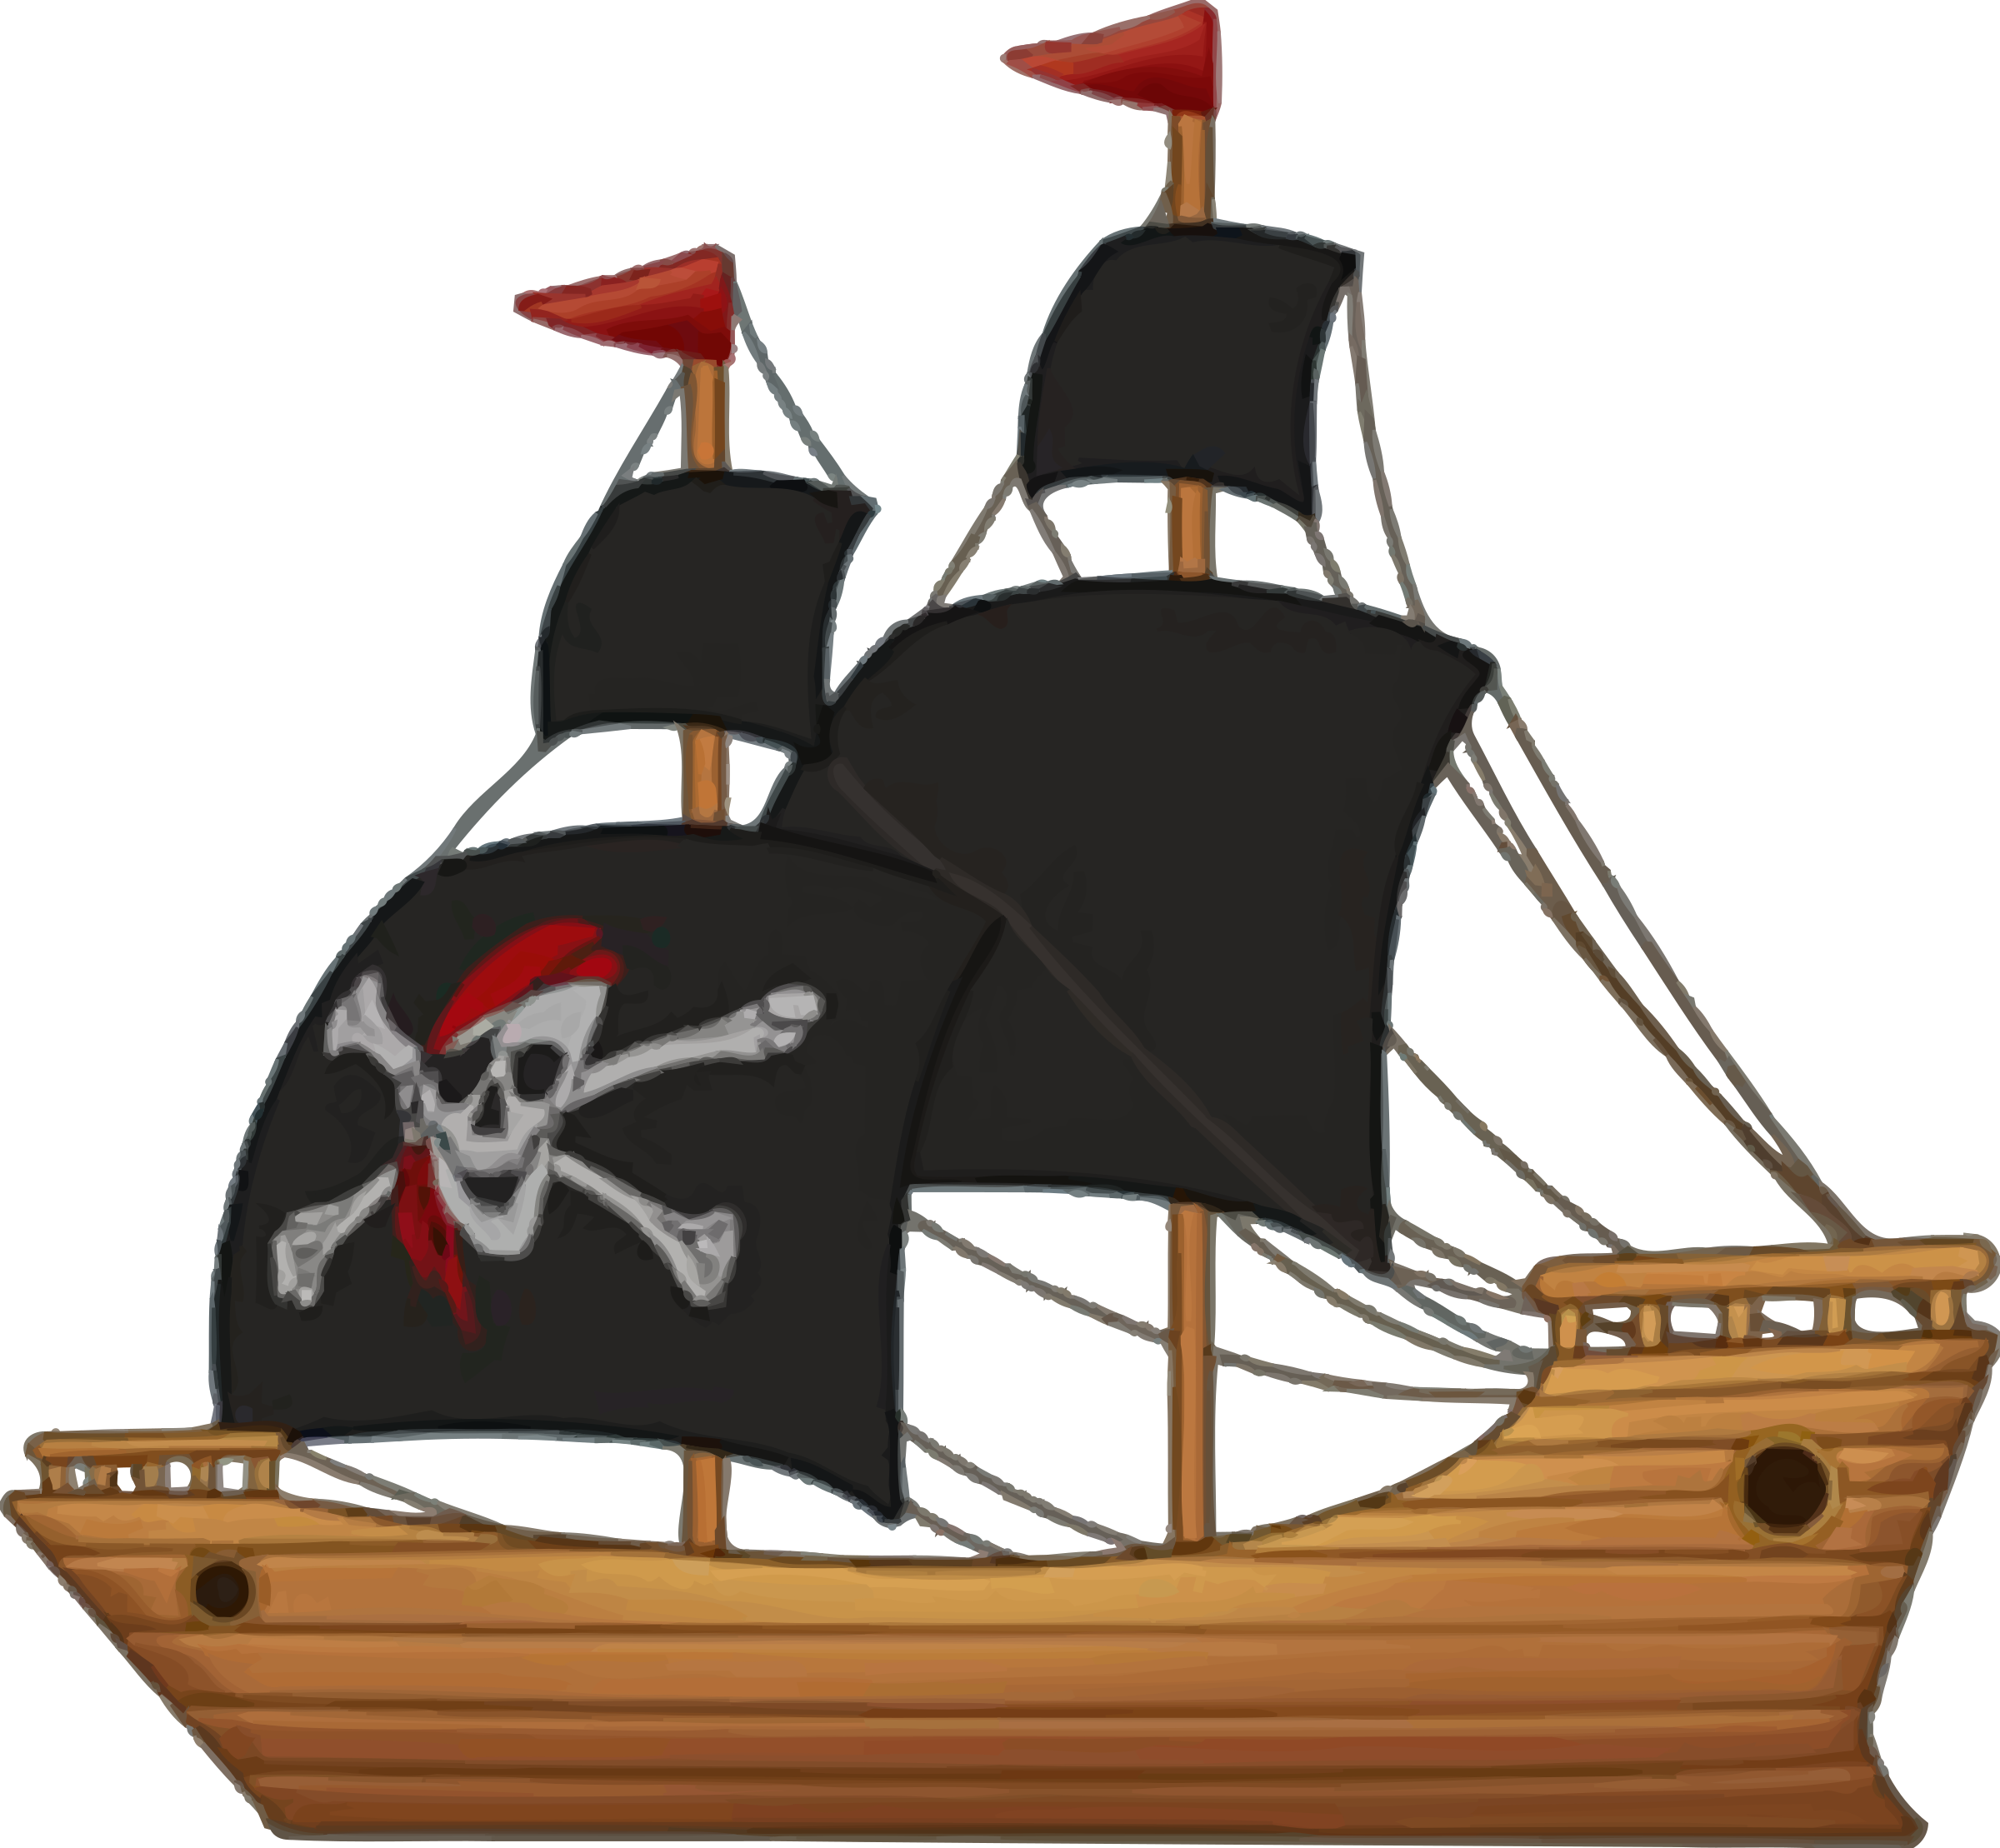 Pirate Ship Vector Clipart image - Free stock photo ...